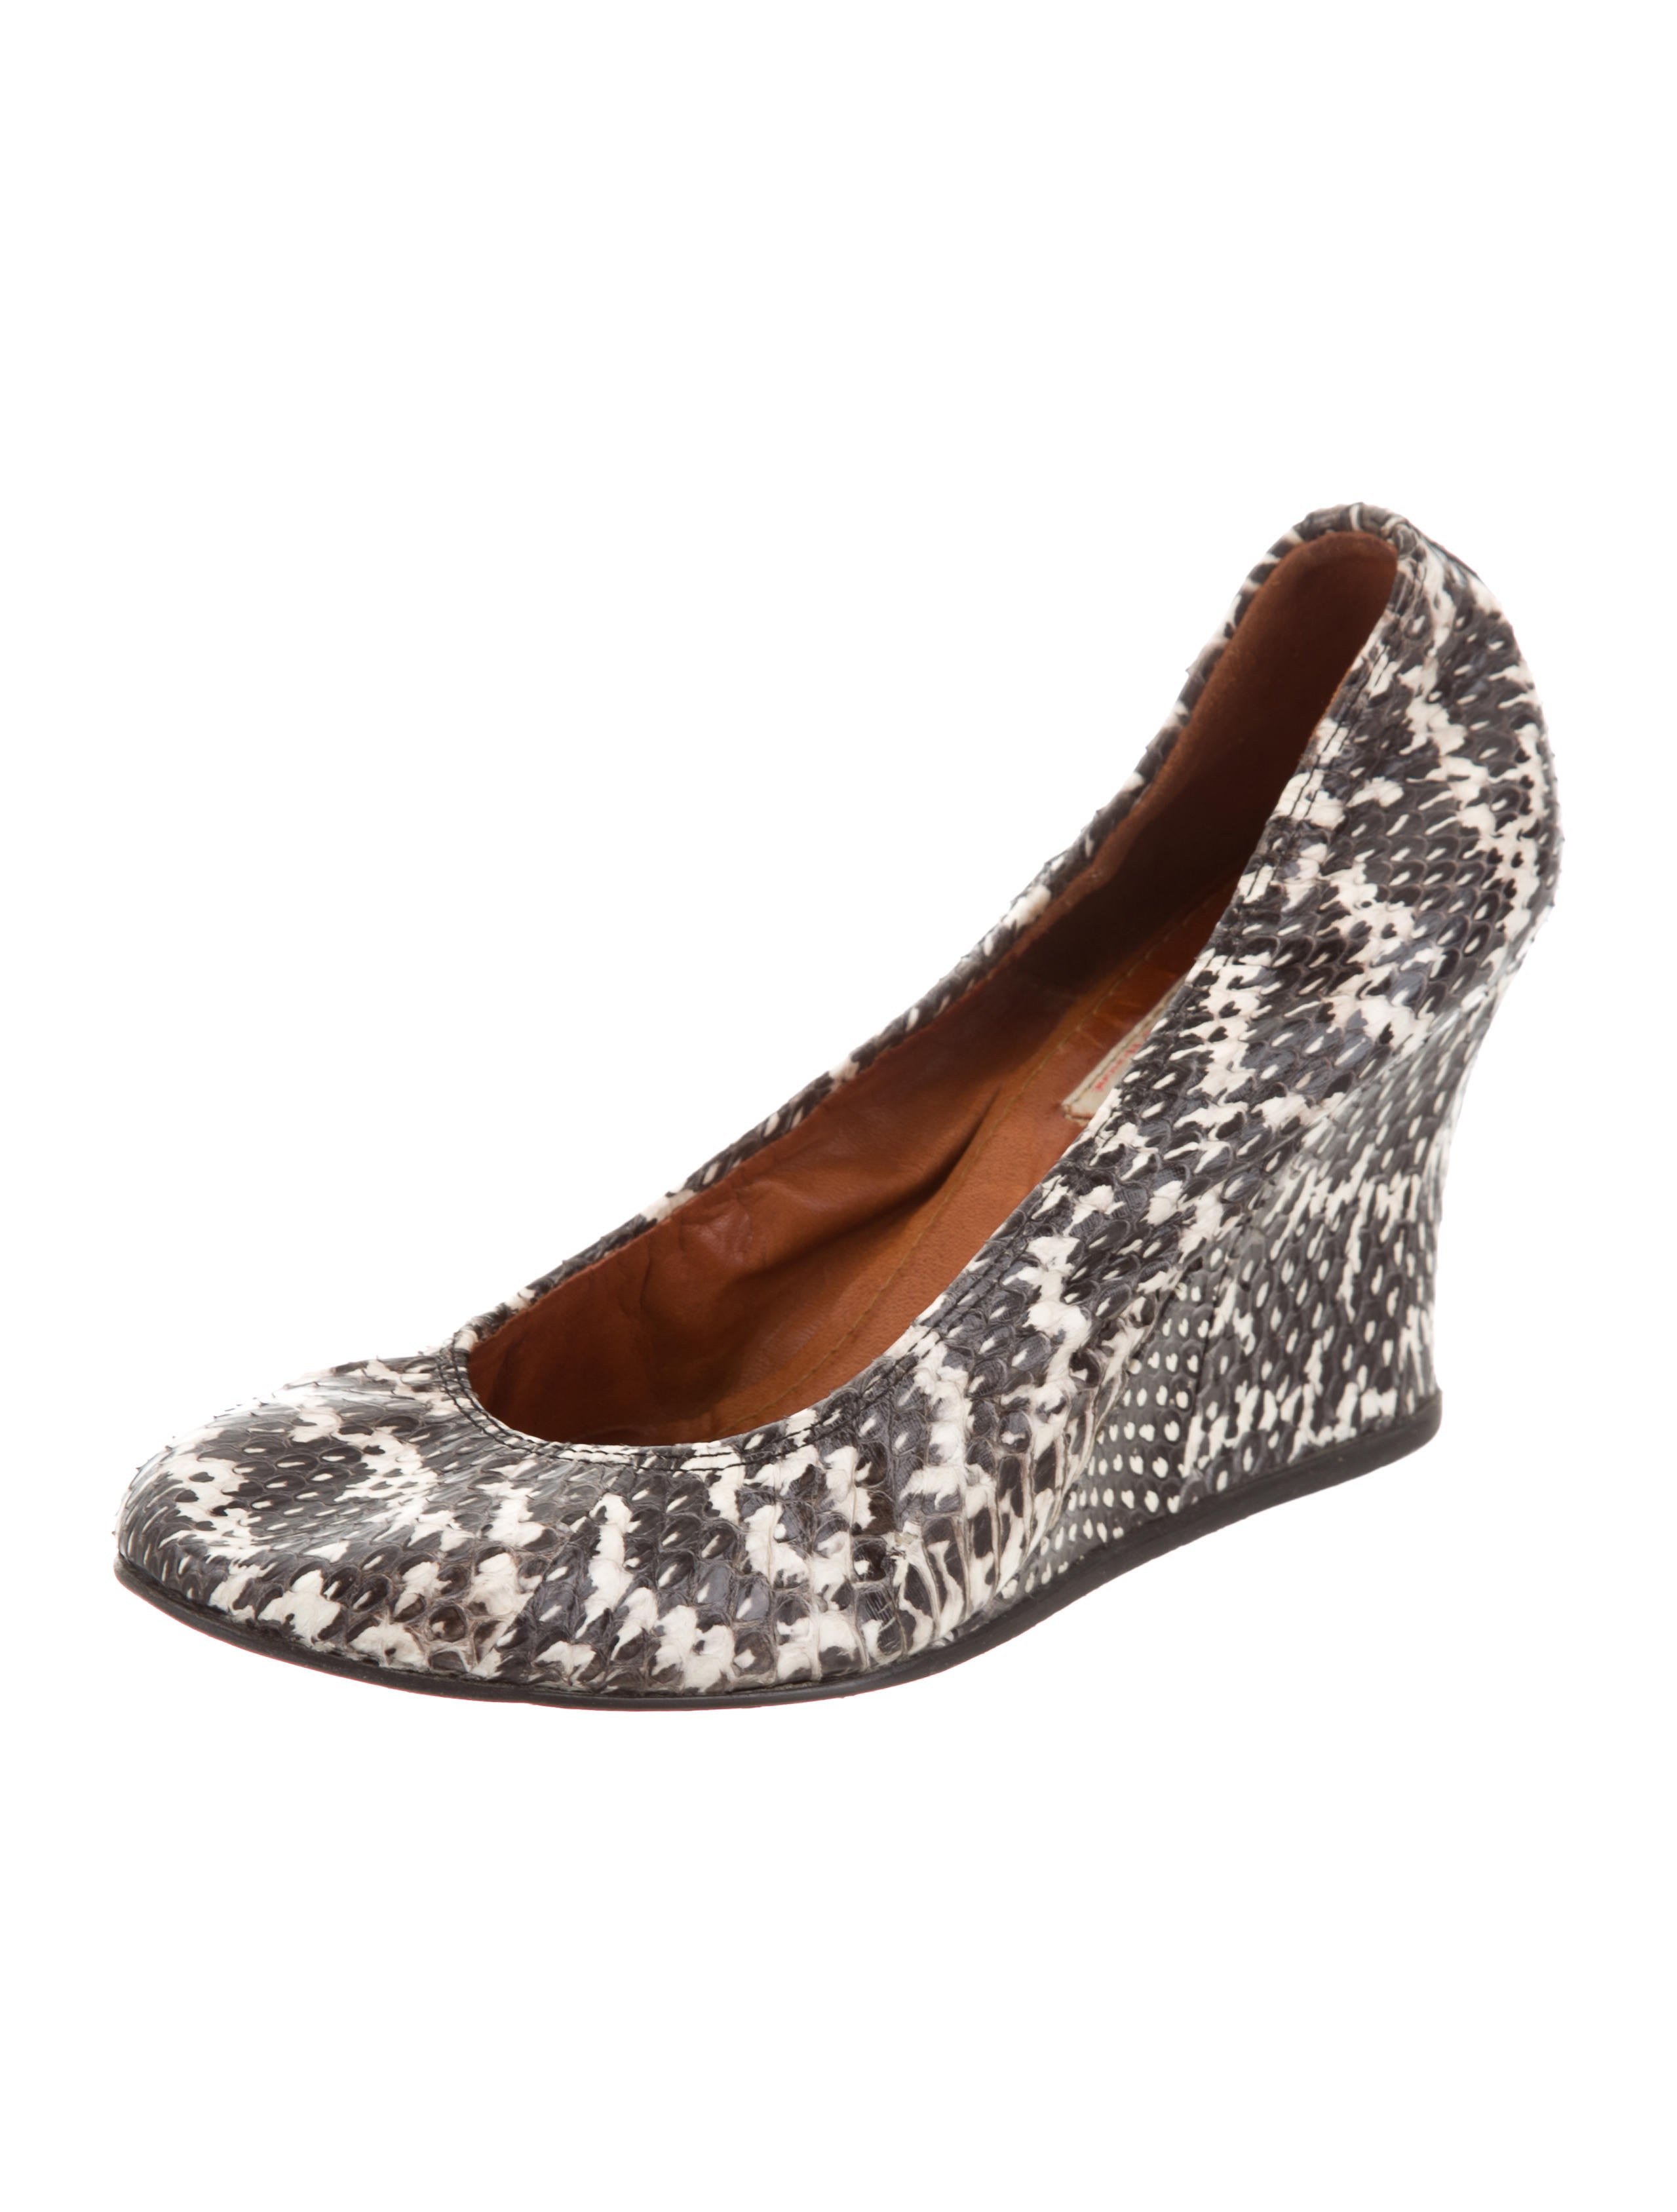 Lanvin Snakeskin Round-Toe Wedges sale in China discount amazing price lowest price cheap online 2015 sale online 8ncjBbqH